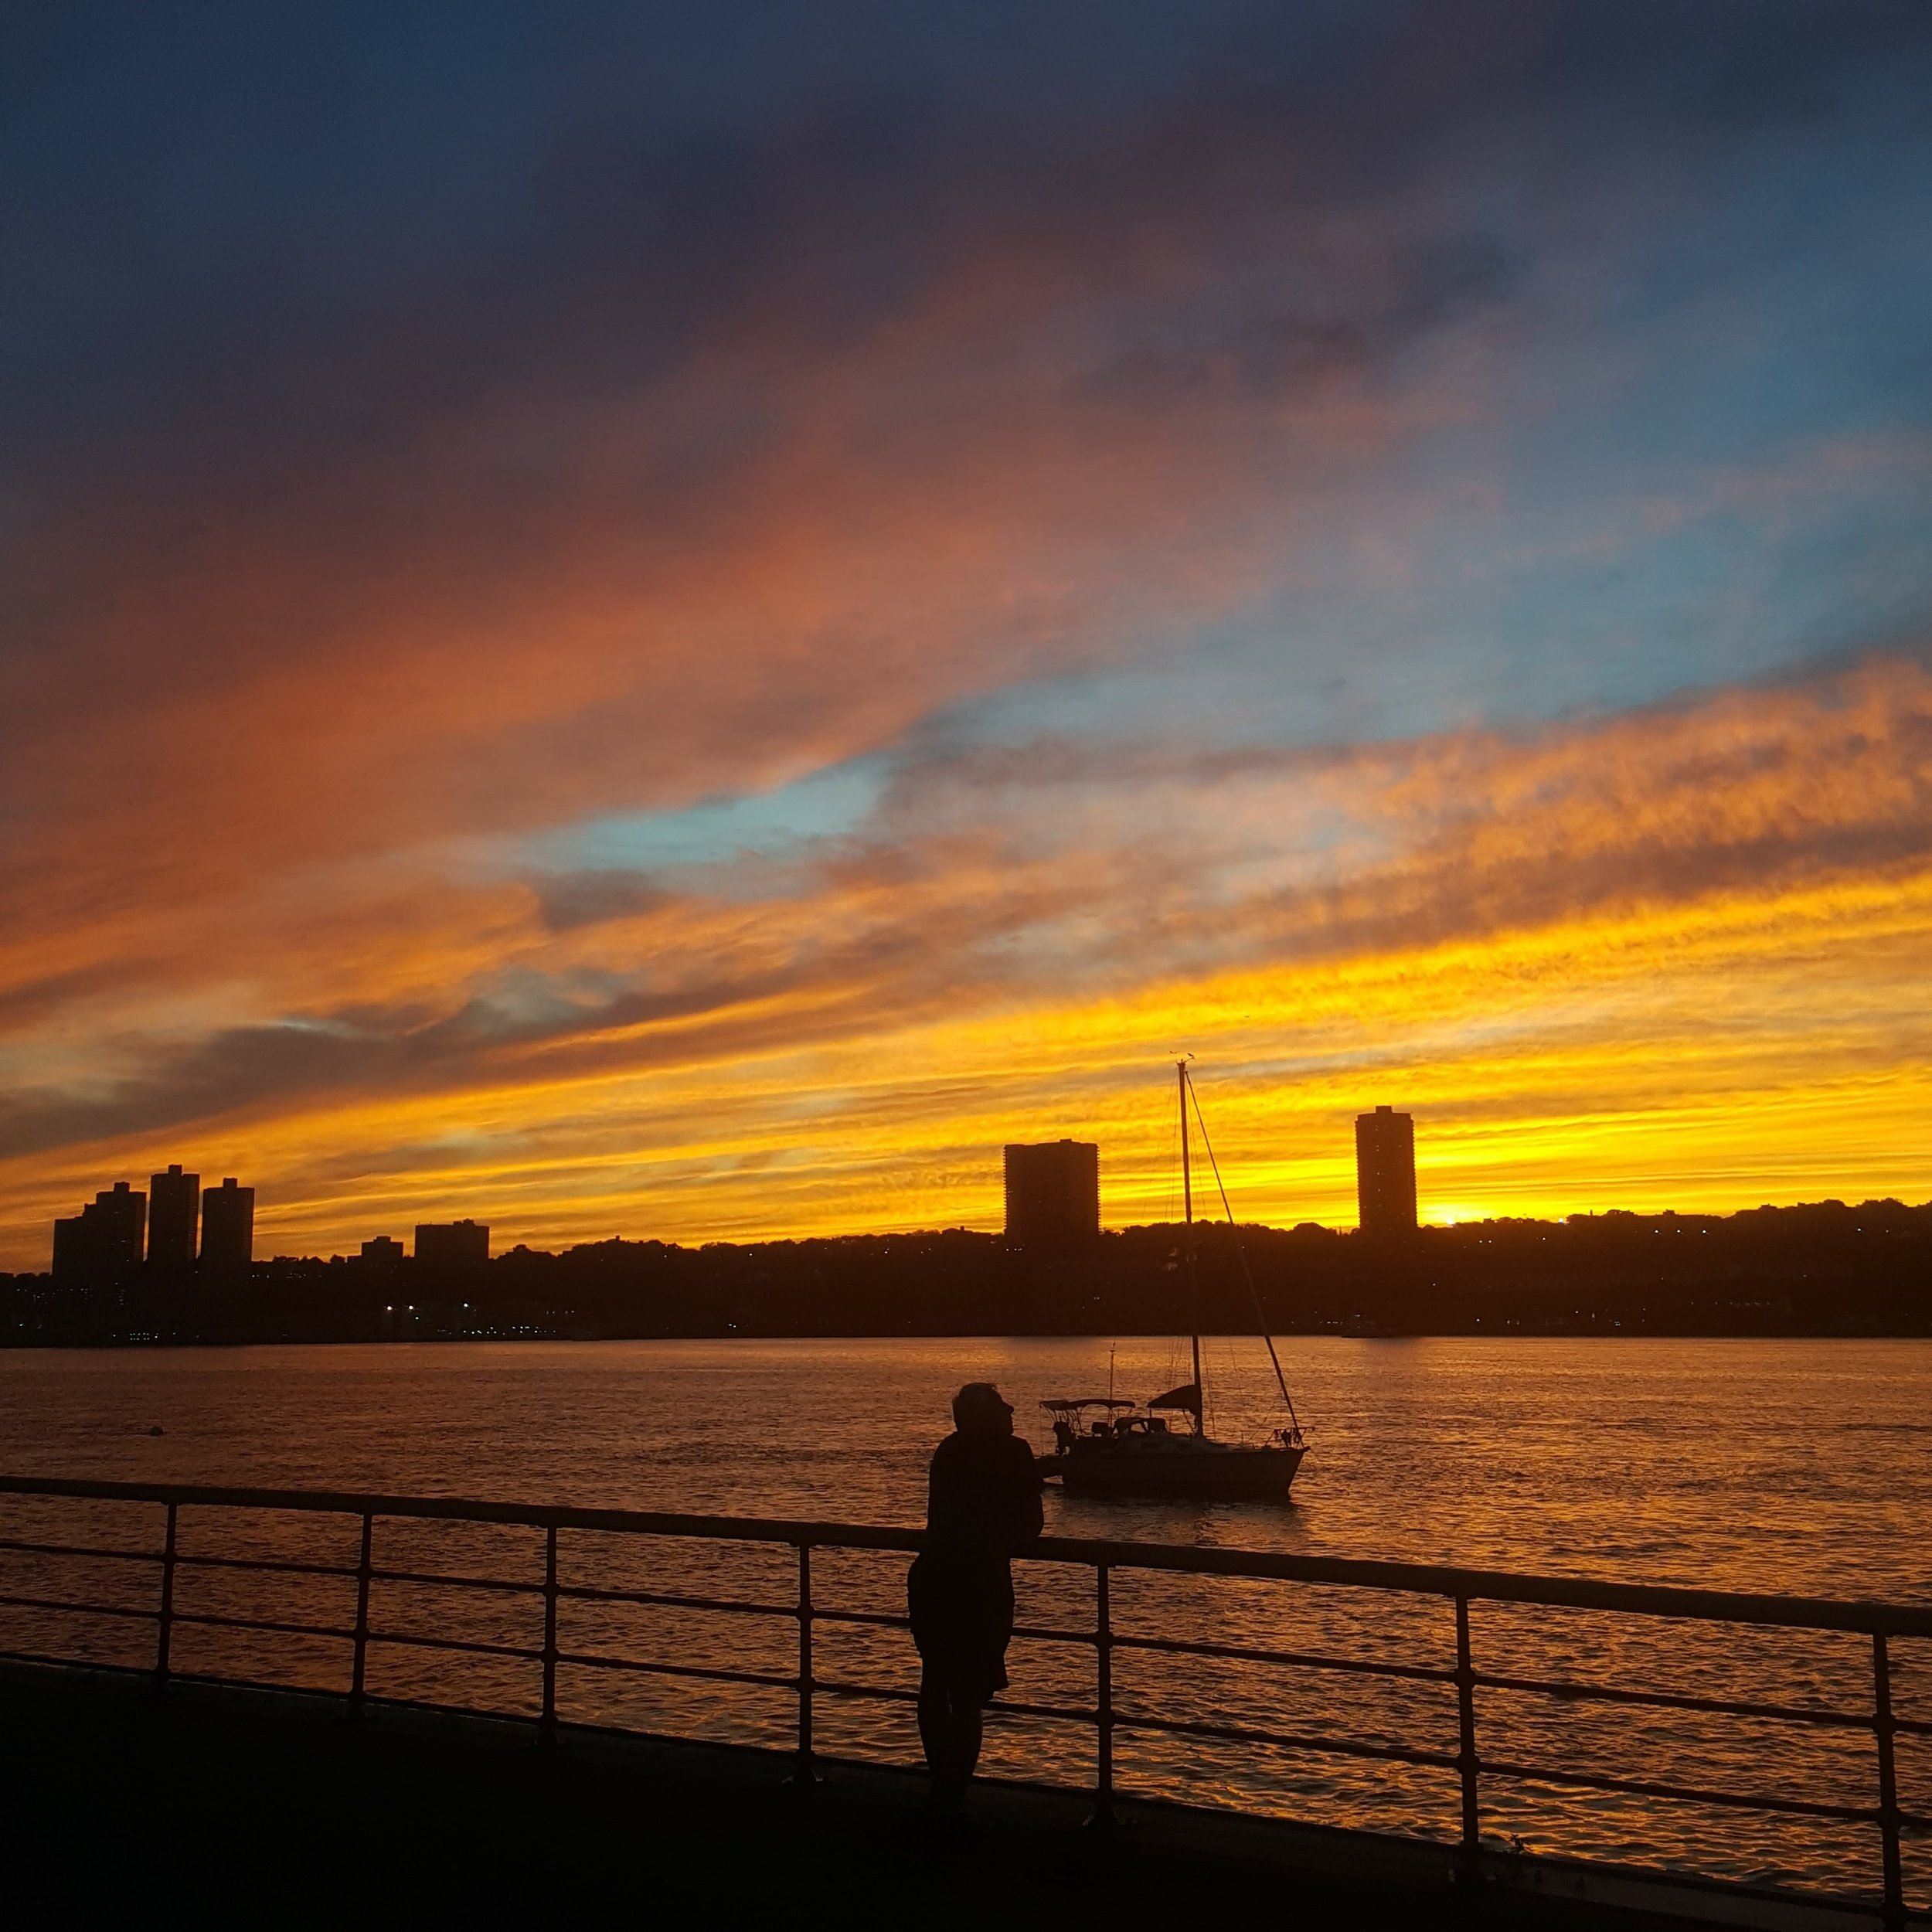 Fall sunset views on the Hudson